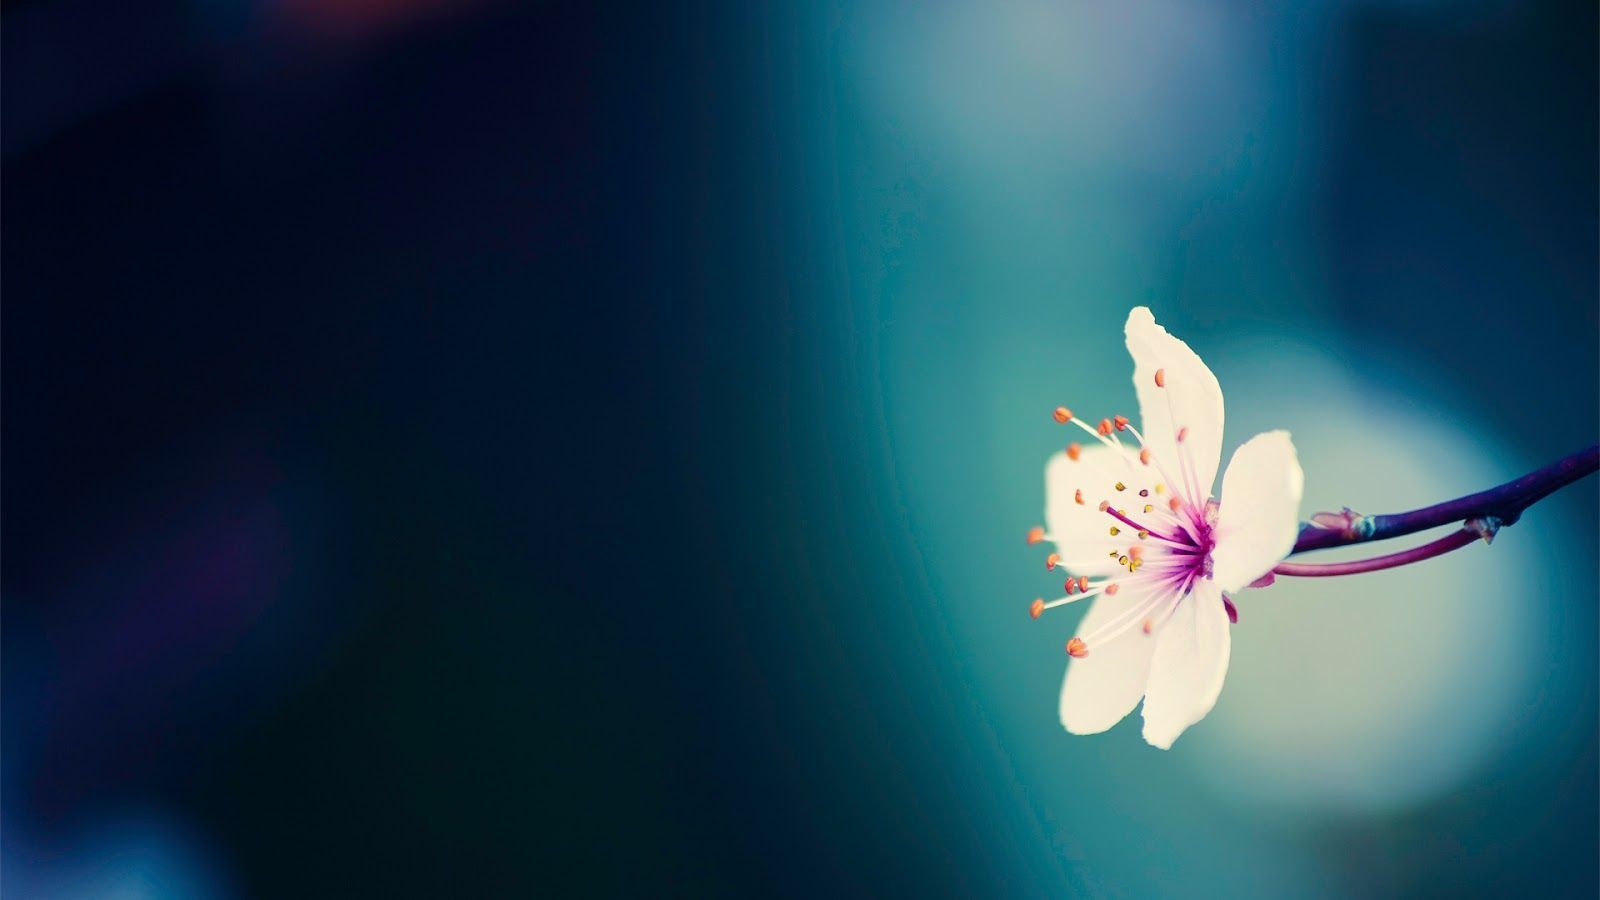 Pretty Backgrounds (44 Wallpapers) - Adorable Wallpapers